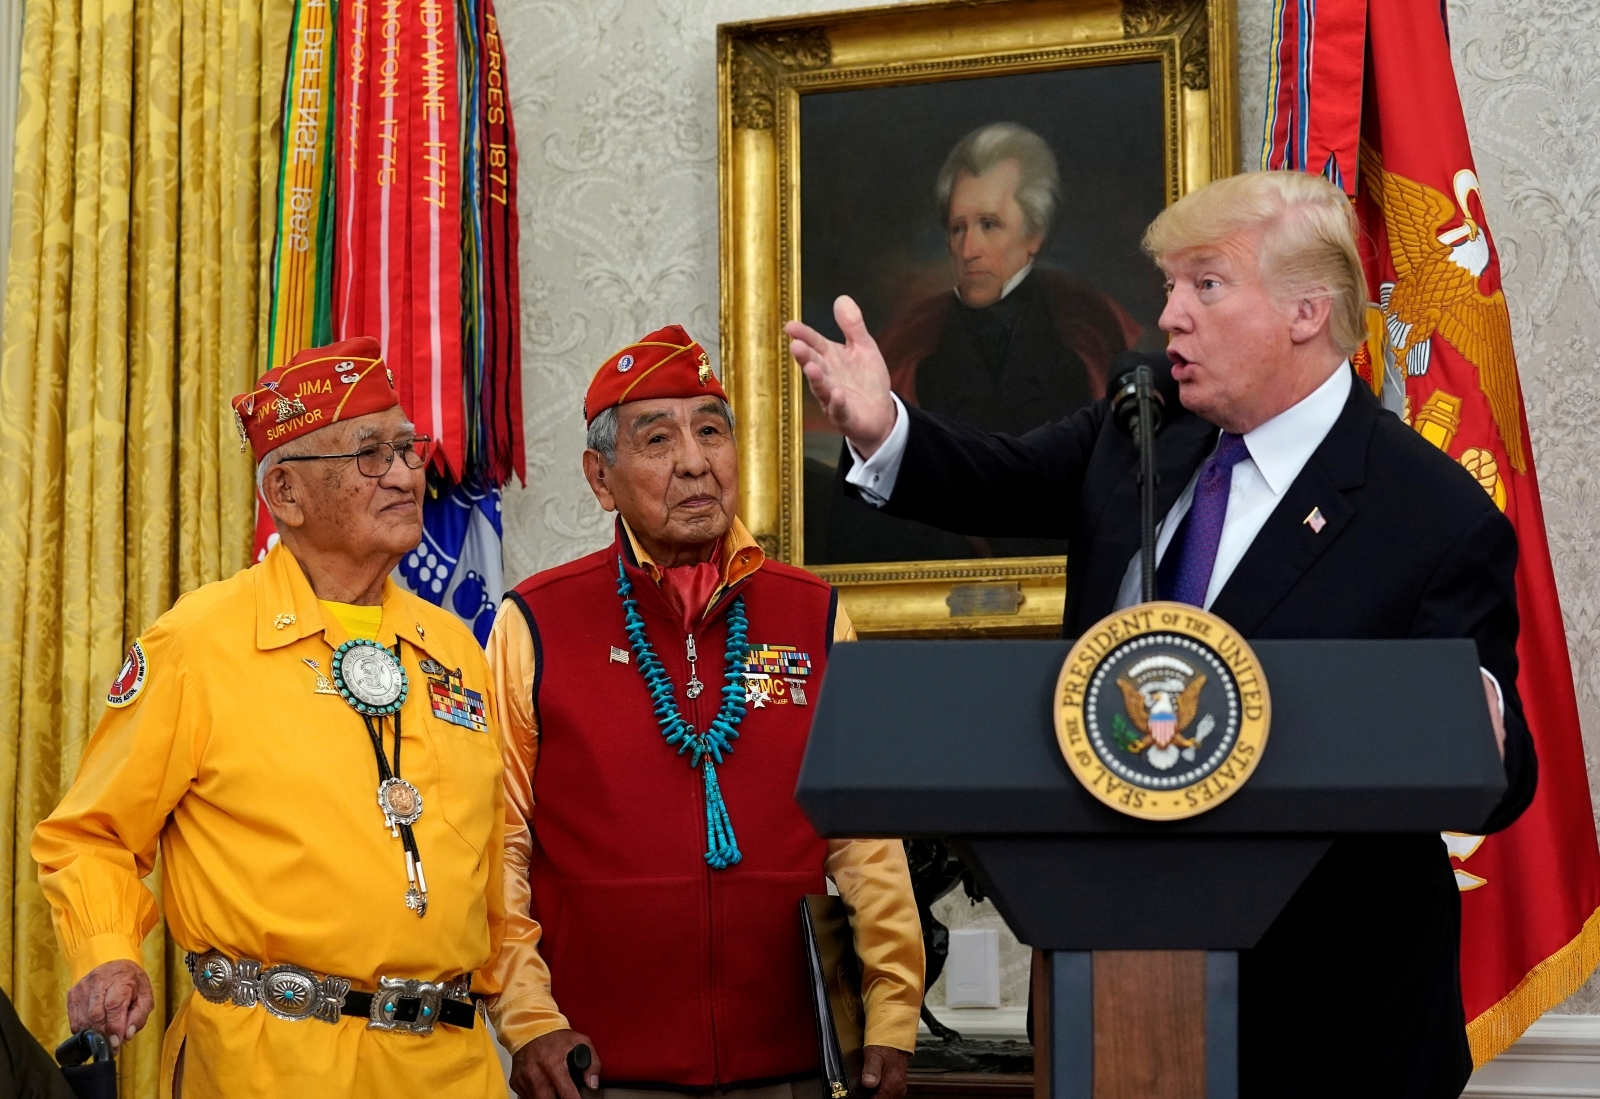 Enough Of This Bs Twitter Blasts Trump Over Pocahontas